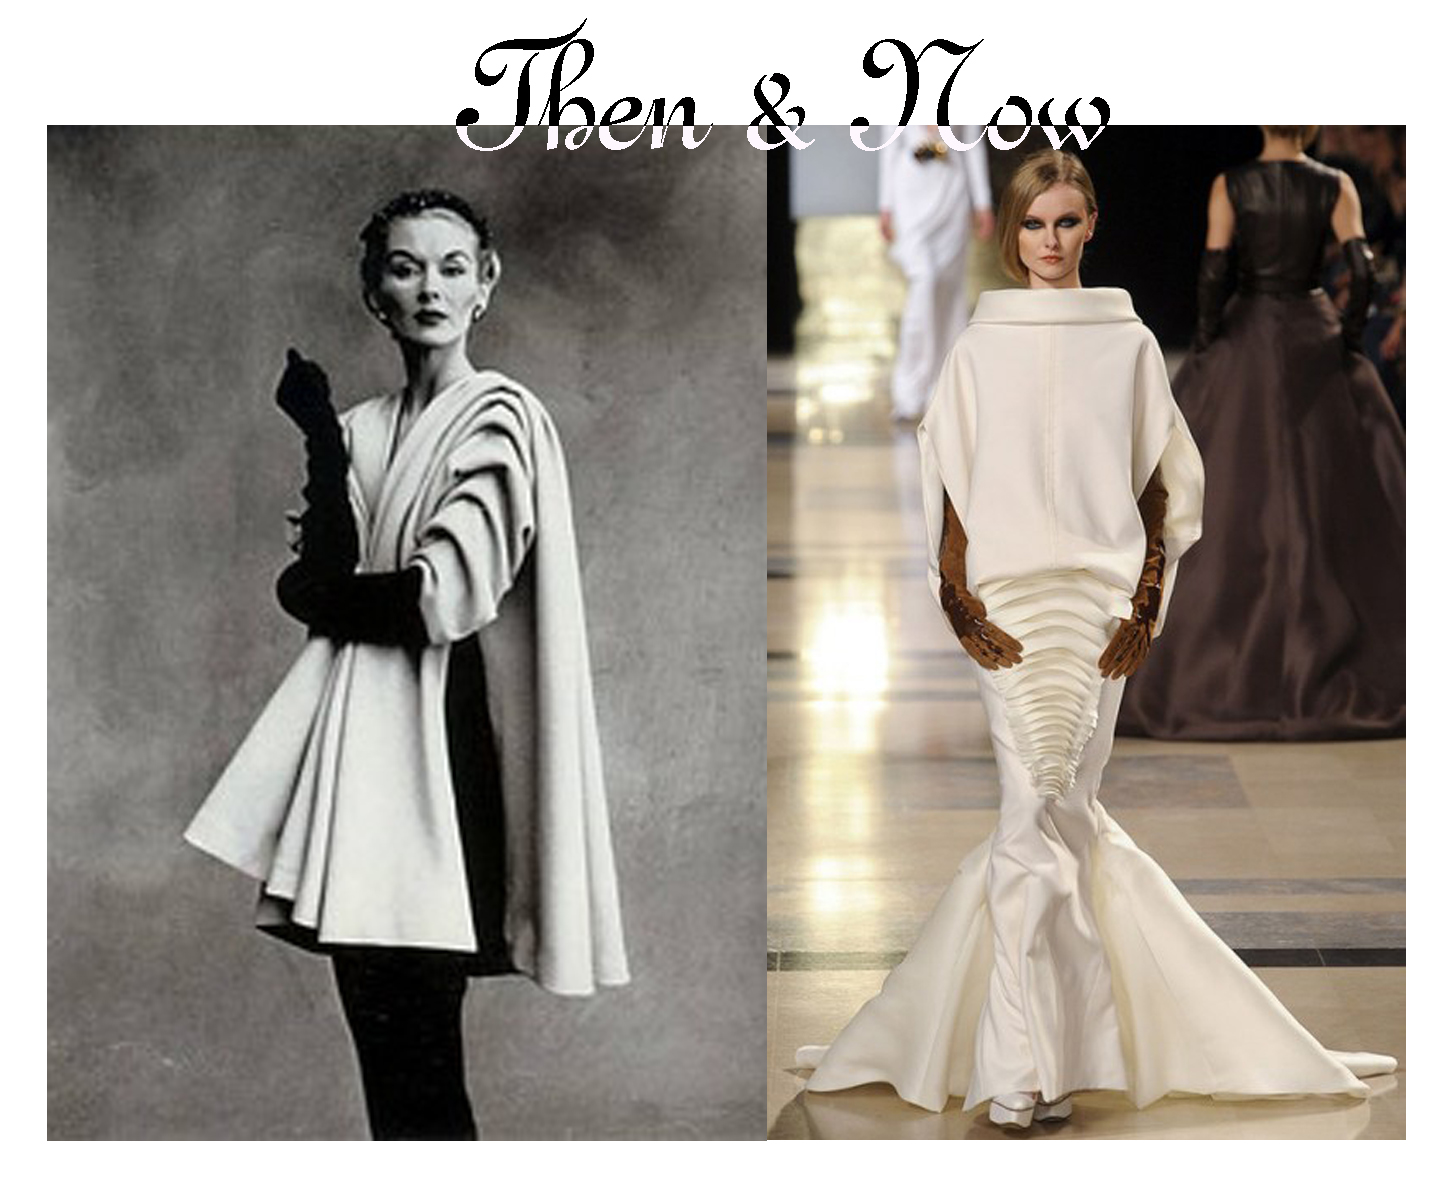 Then now on pins and needles for The history of haute couture